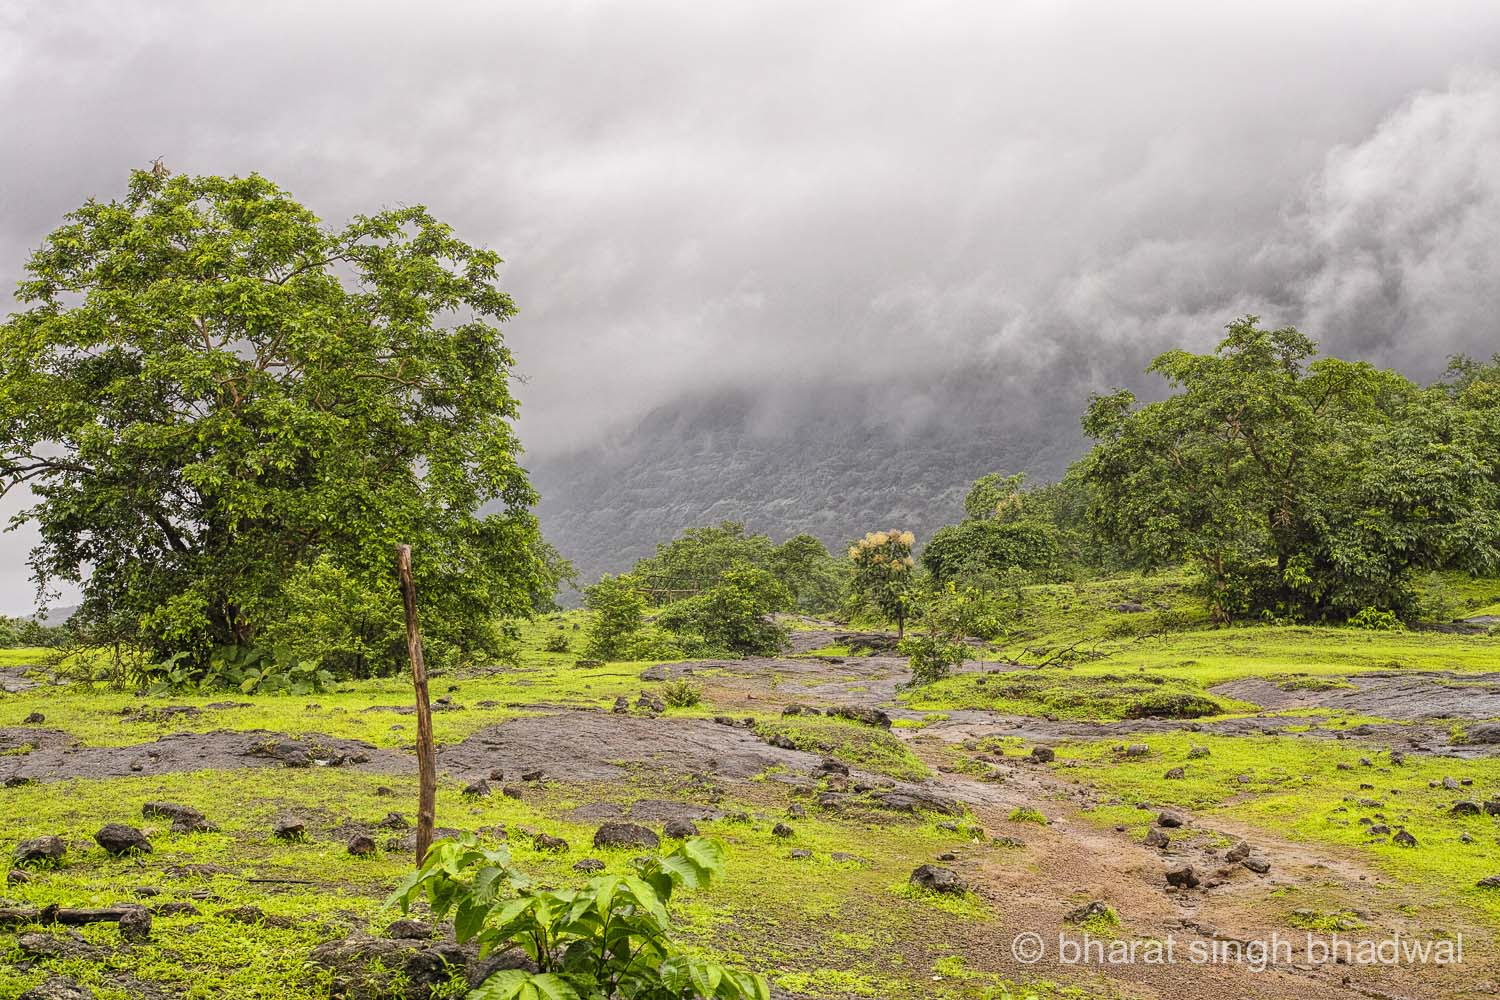 North end of the plateau. Bhimashankar's walls emerging from the mist